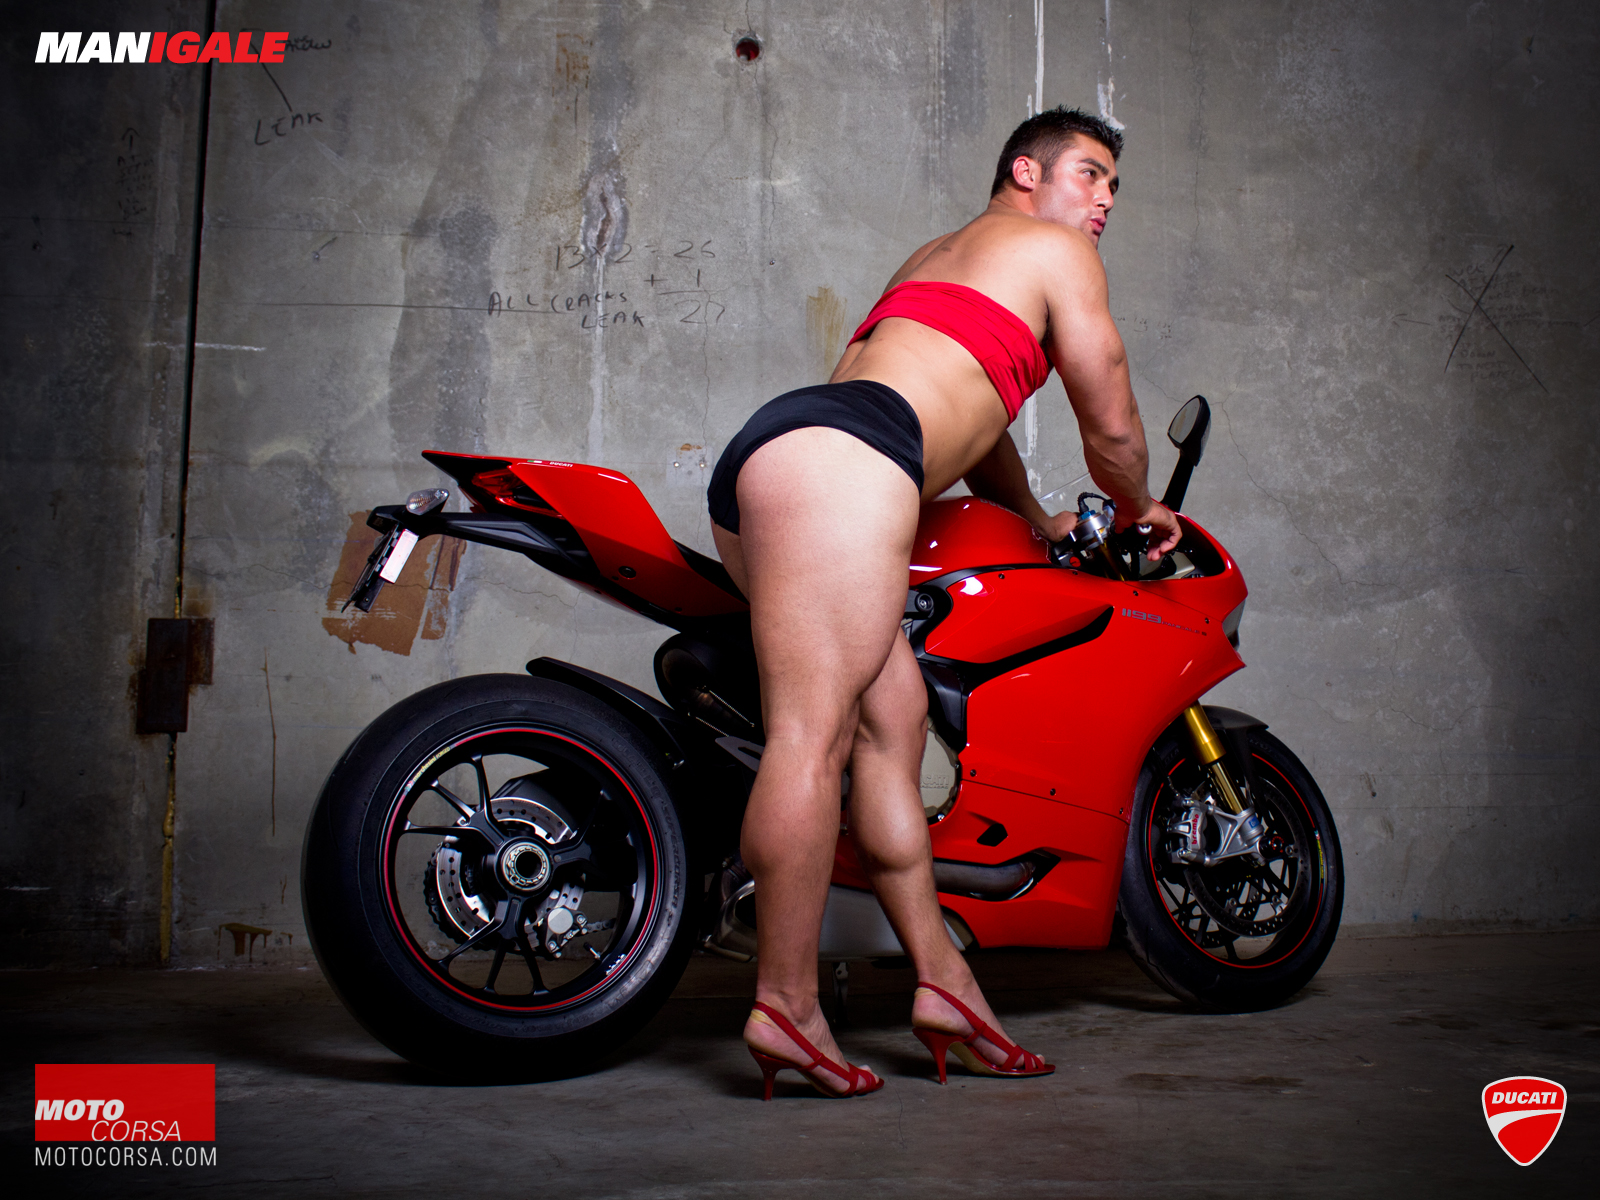 manigale-ducati-1199-wallpaper-10-1600x1200